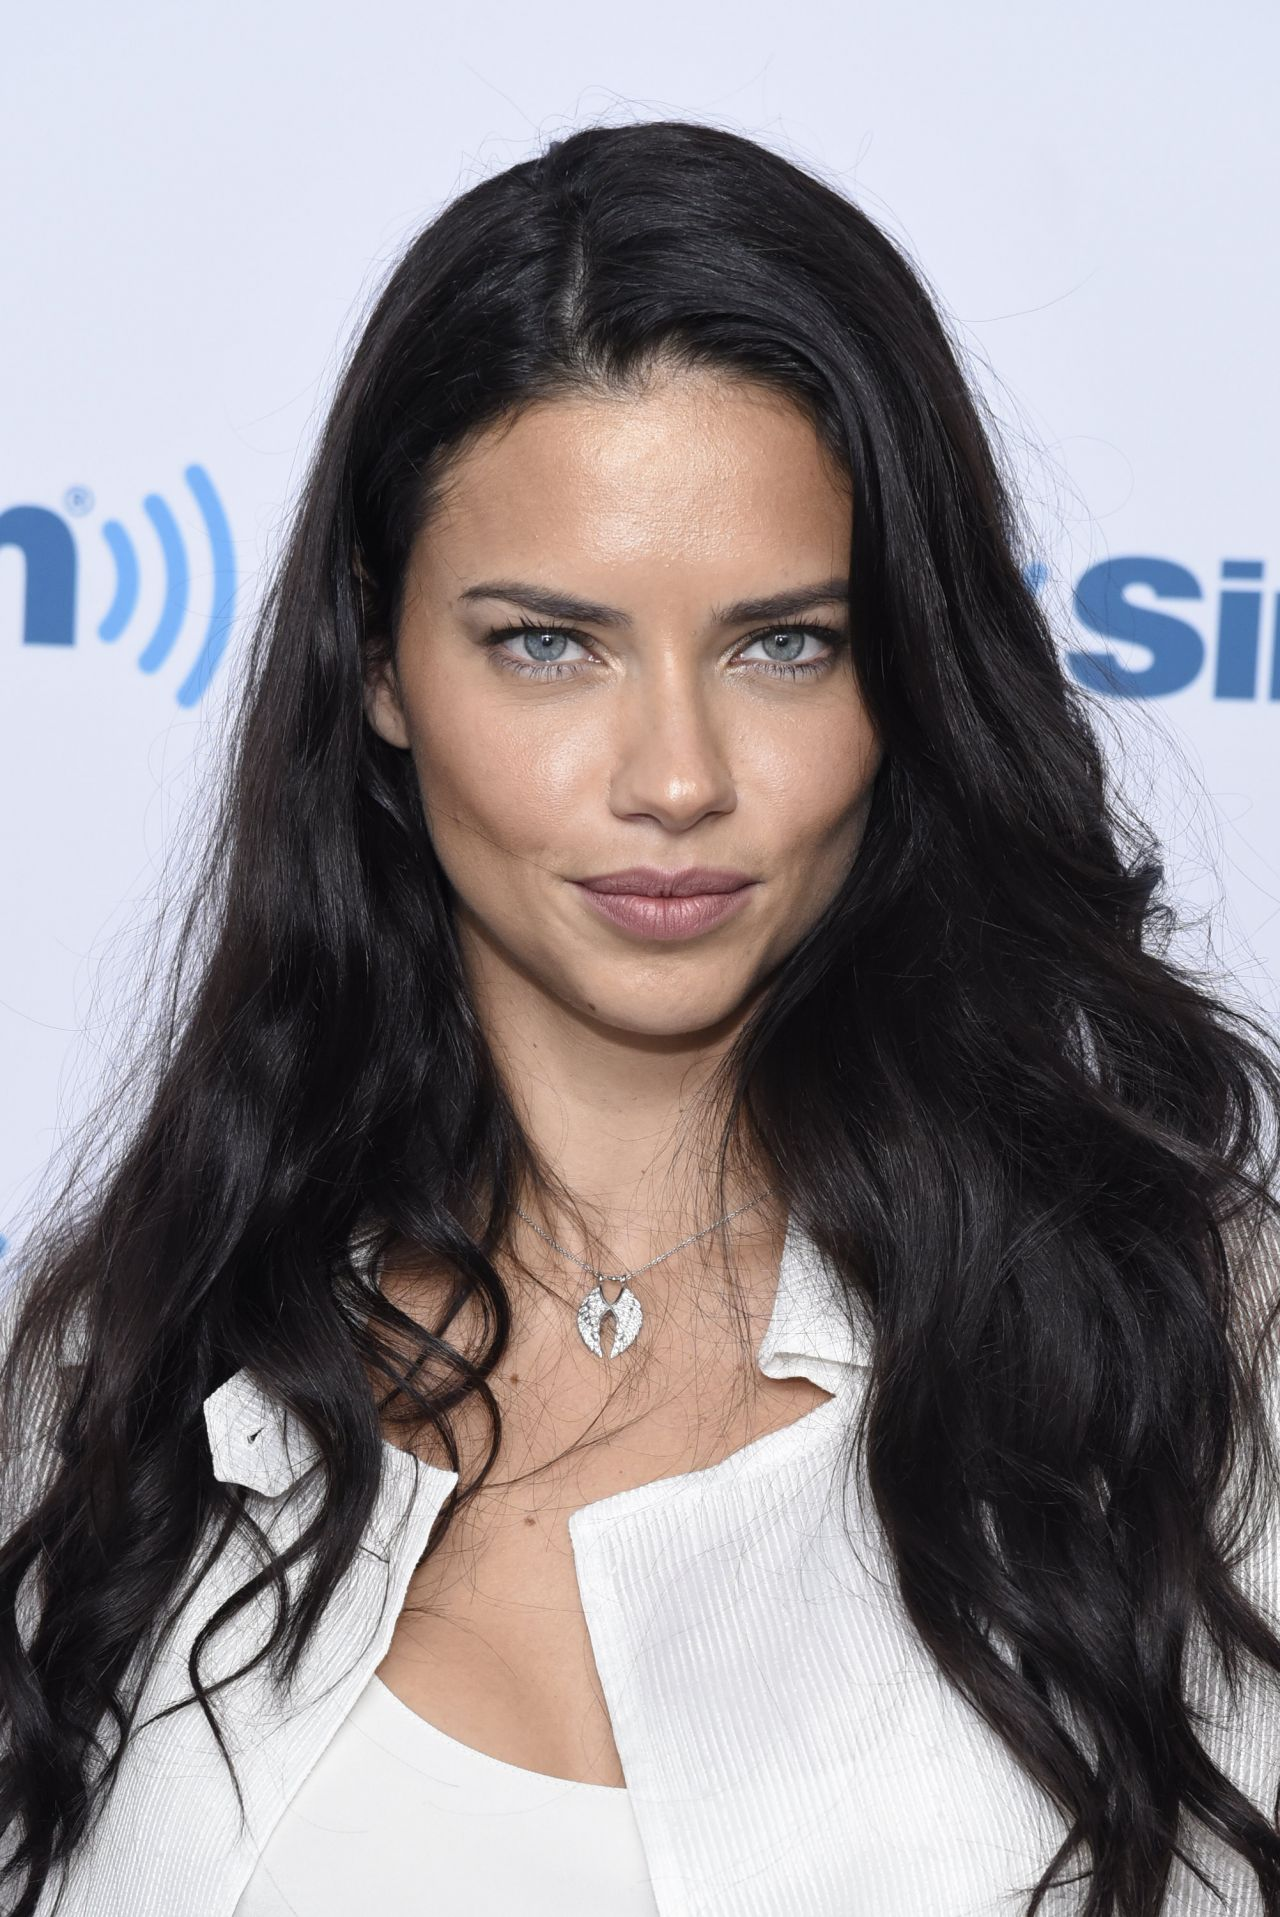 Adriana Lima Siriusxm Studio Event In Nyc 9 7 2016